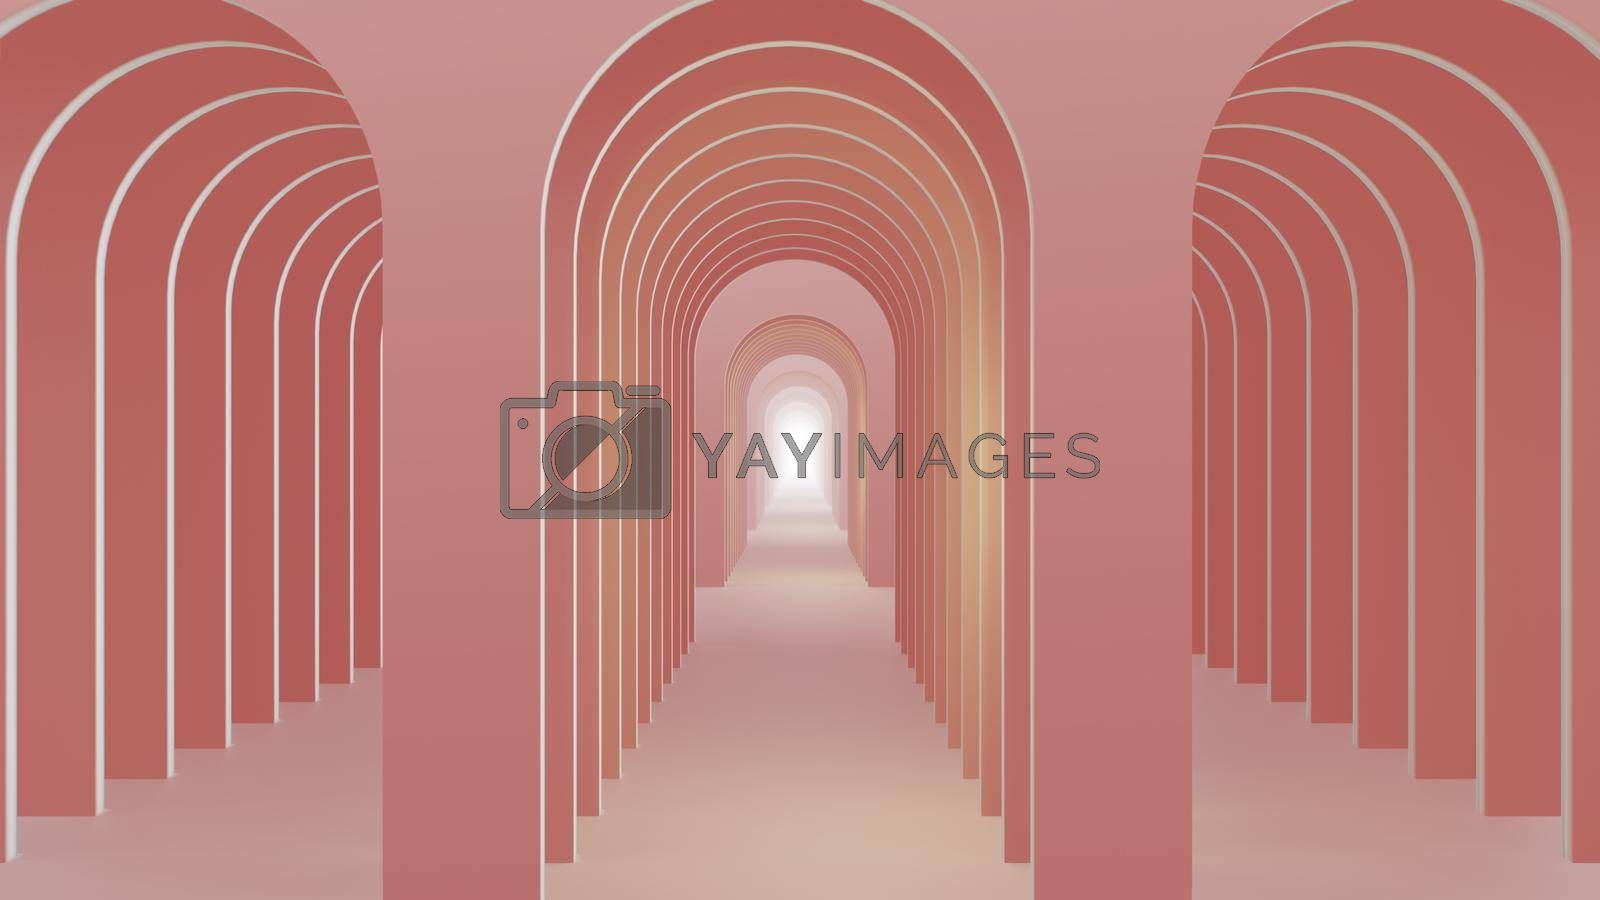 3D illustration Background for advertising and wallpaper in architecture and building scene. 3D rendering in decorative concept.